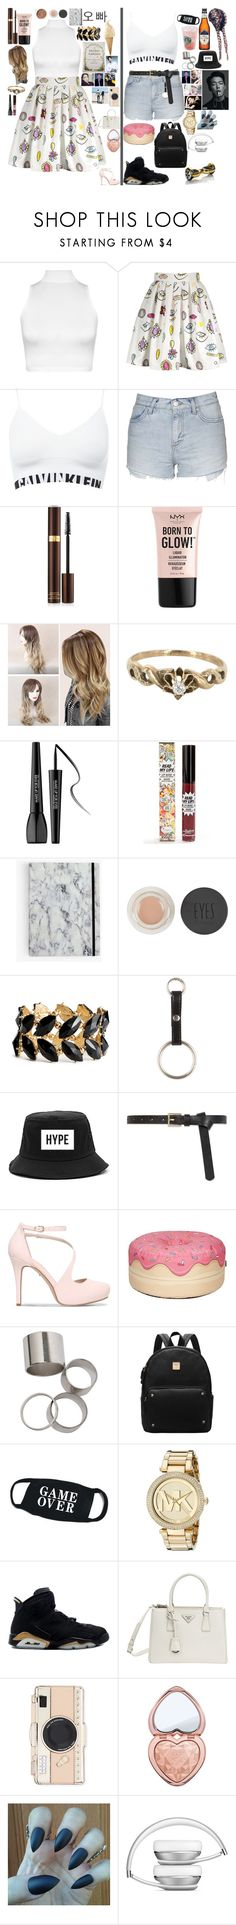 """My mum (the one on my left your right) vs me (the one with the beer and mask) at 15"" by keeliewatsonoffical ❤ liked on Polyvore featuring WearAll, Calvin Klein, Topshop, Tom Ford, NYX, Vintage, MAKE UP FOR EVER, TheBalm, H&M and Carvela"